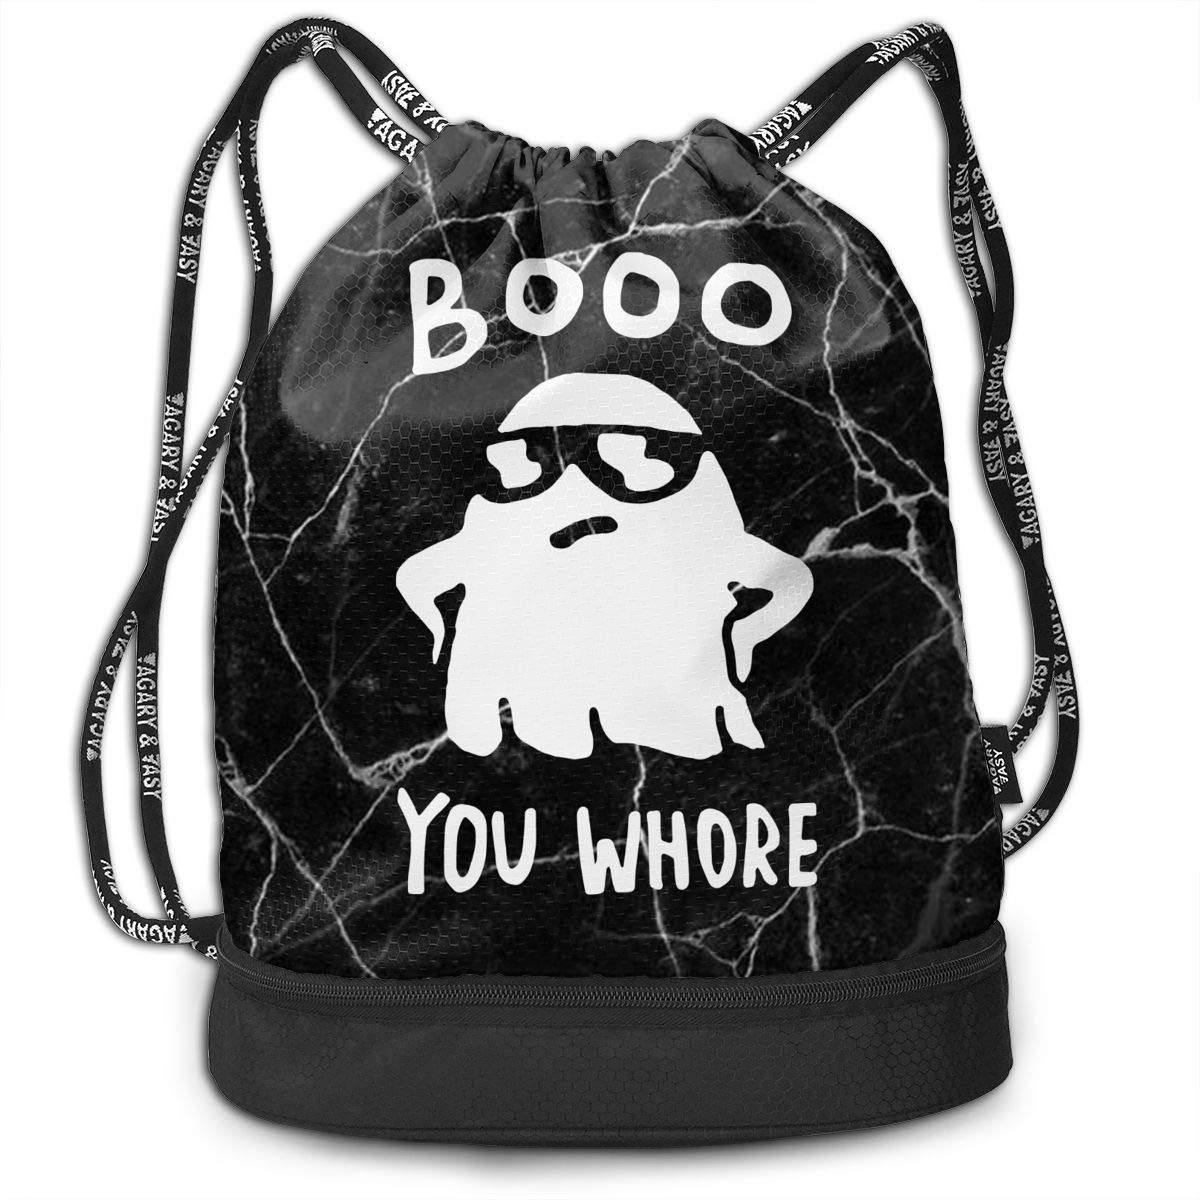 SG0HGO Drawstring Pack Boo Ghost Men /& Women Yoga Dance Travel Shoulder Bags